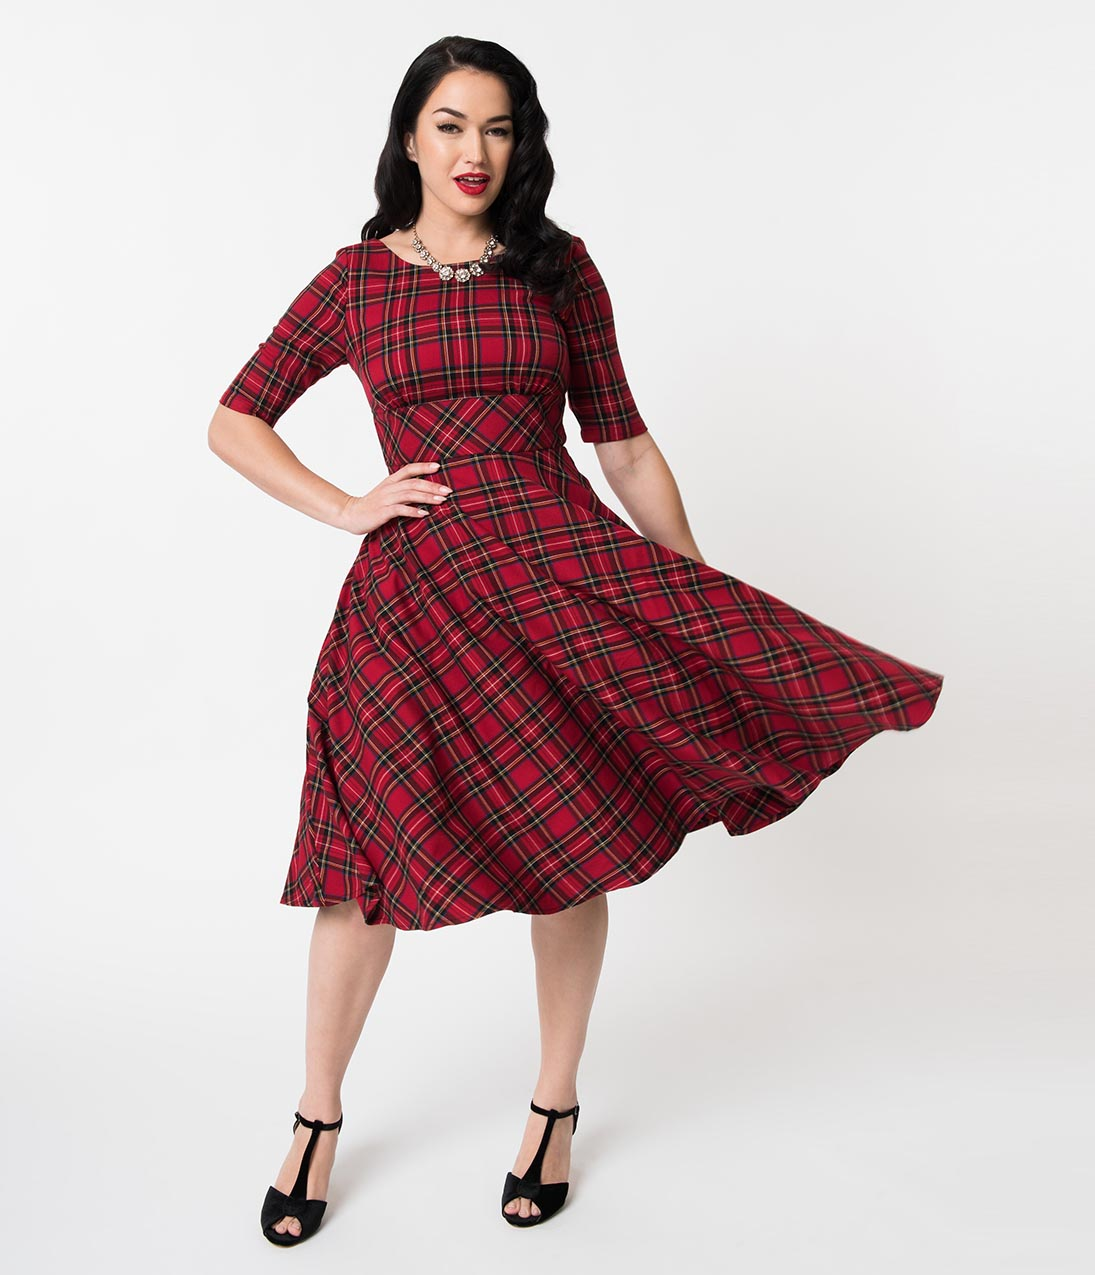 1950s Swing Dresses | 50s Swing Dress Hell Bunny 1950S Red Plaid Irvine Swing Holiday Dress $82.00 AT vintagedancer.com